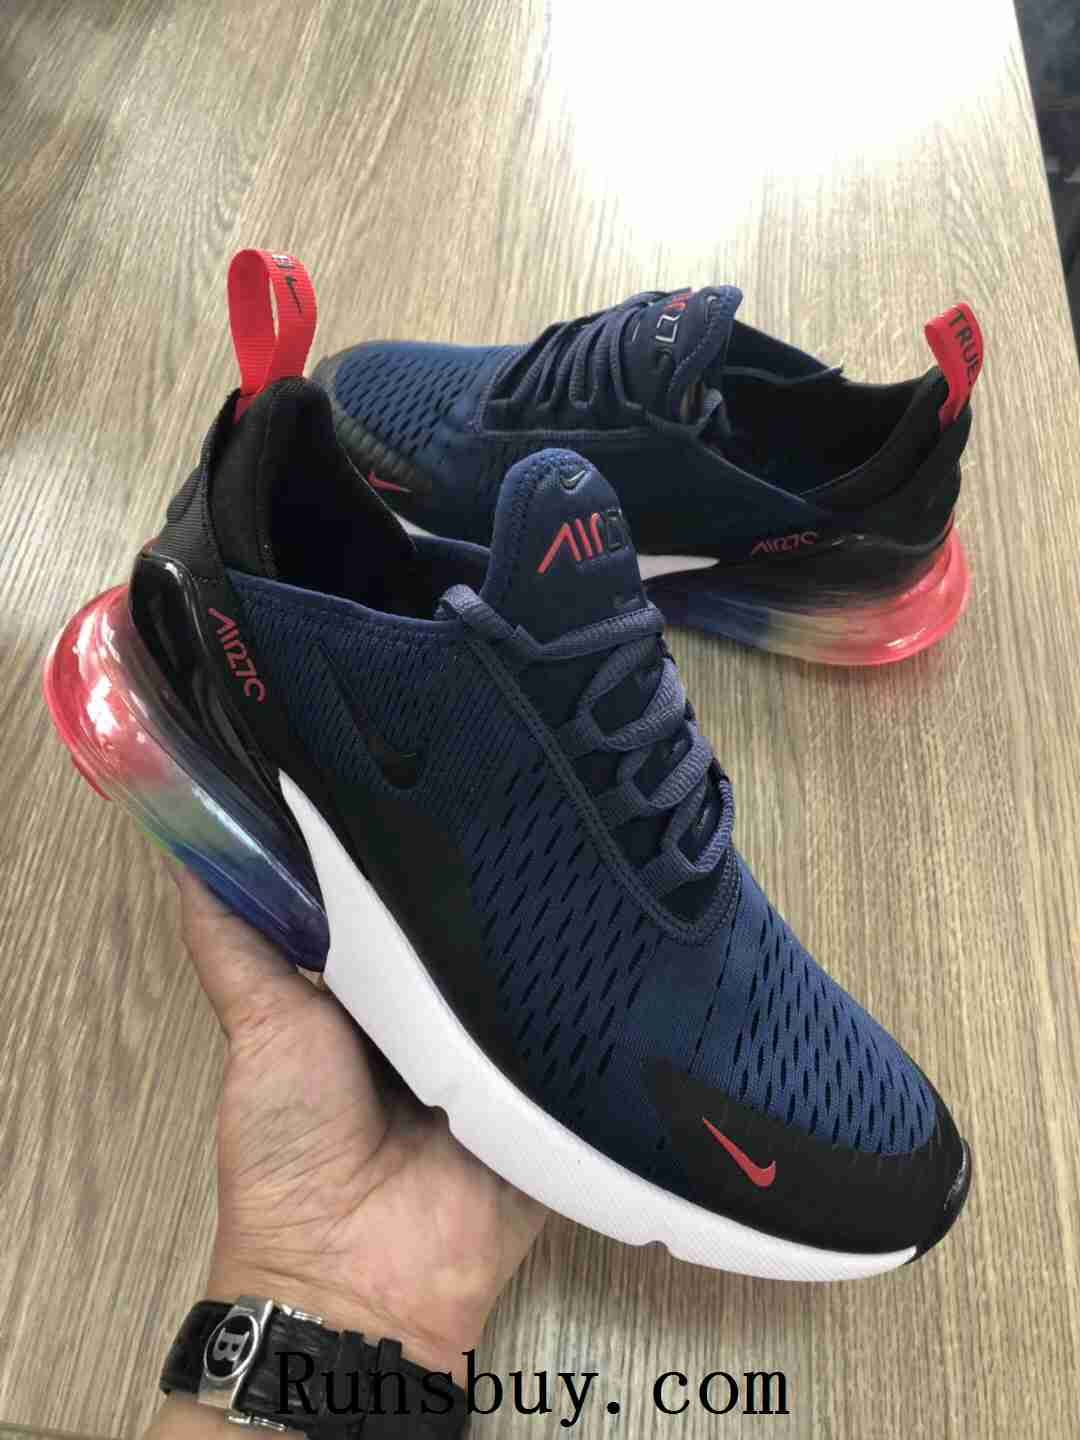 new styles e0b65 7c29b Nike Air Max 270 Betrue Blue Black Rainbow Women Men Running Shoes